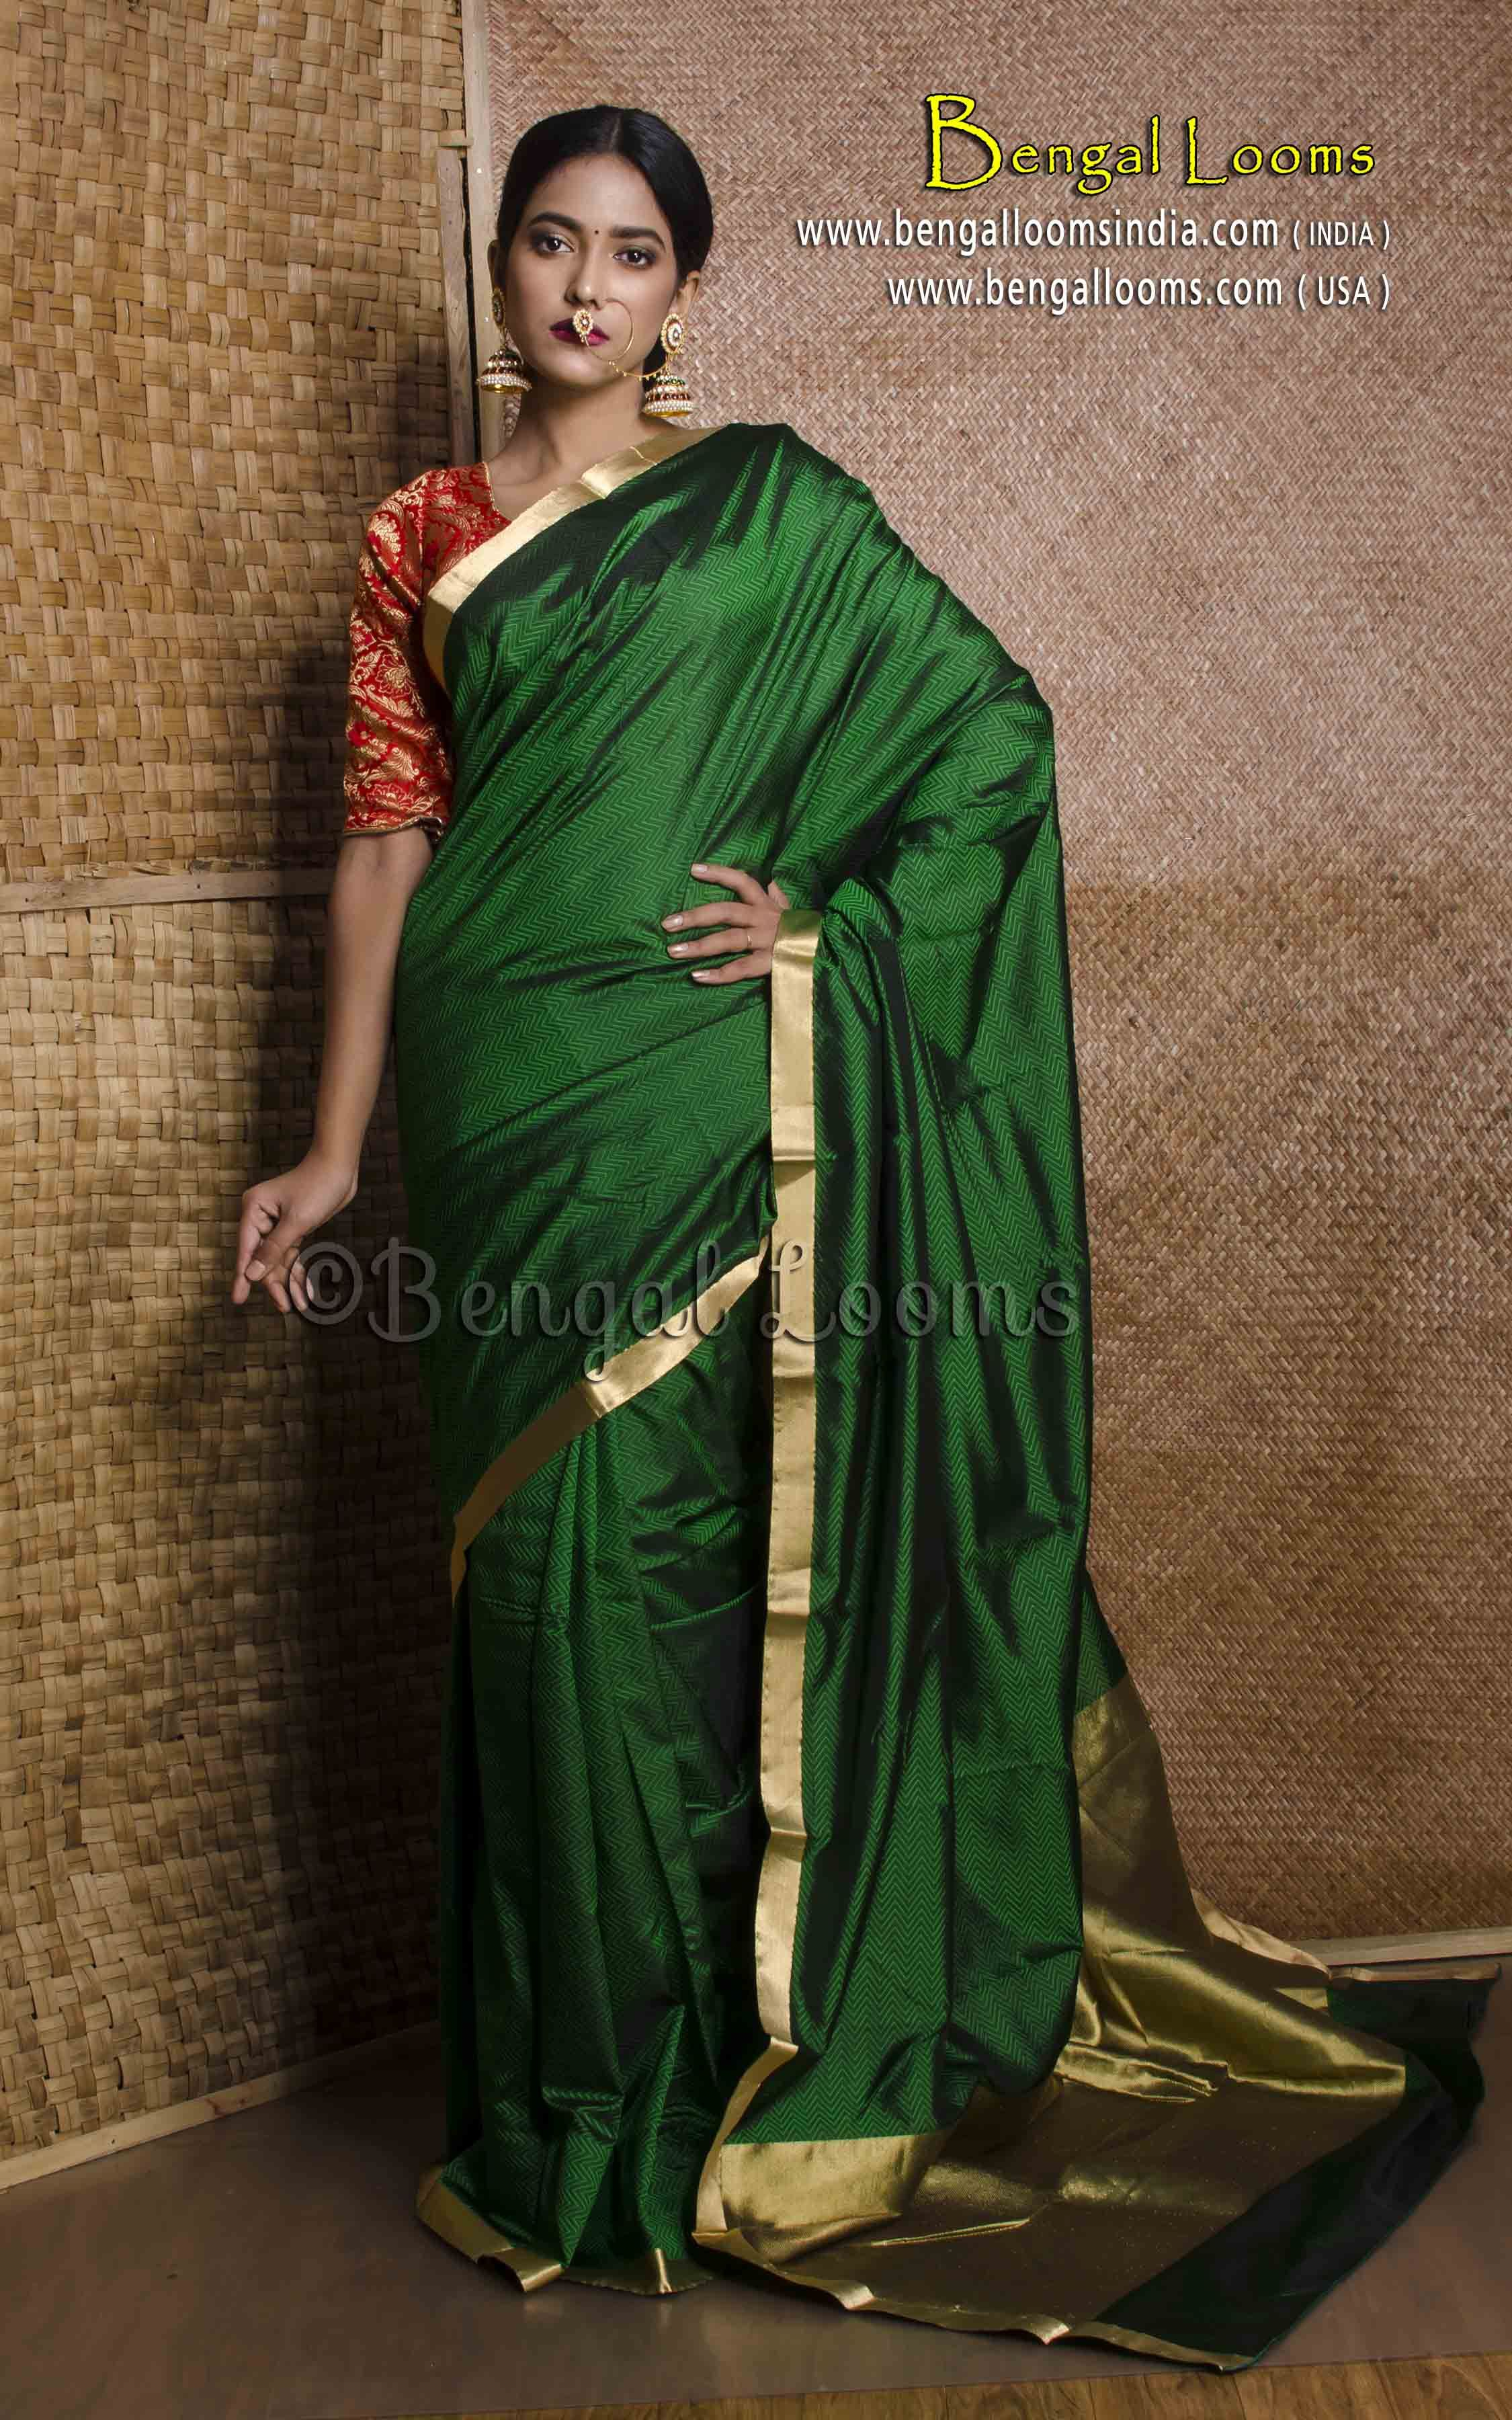 8bceb9641c587 Pure Handloom Kanchipuram Silk Saree in Bottle Green and Gold ...